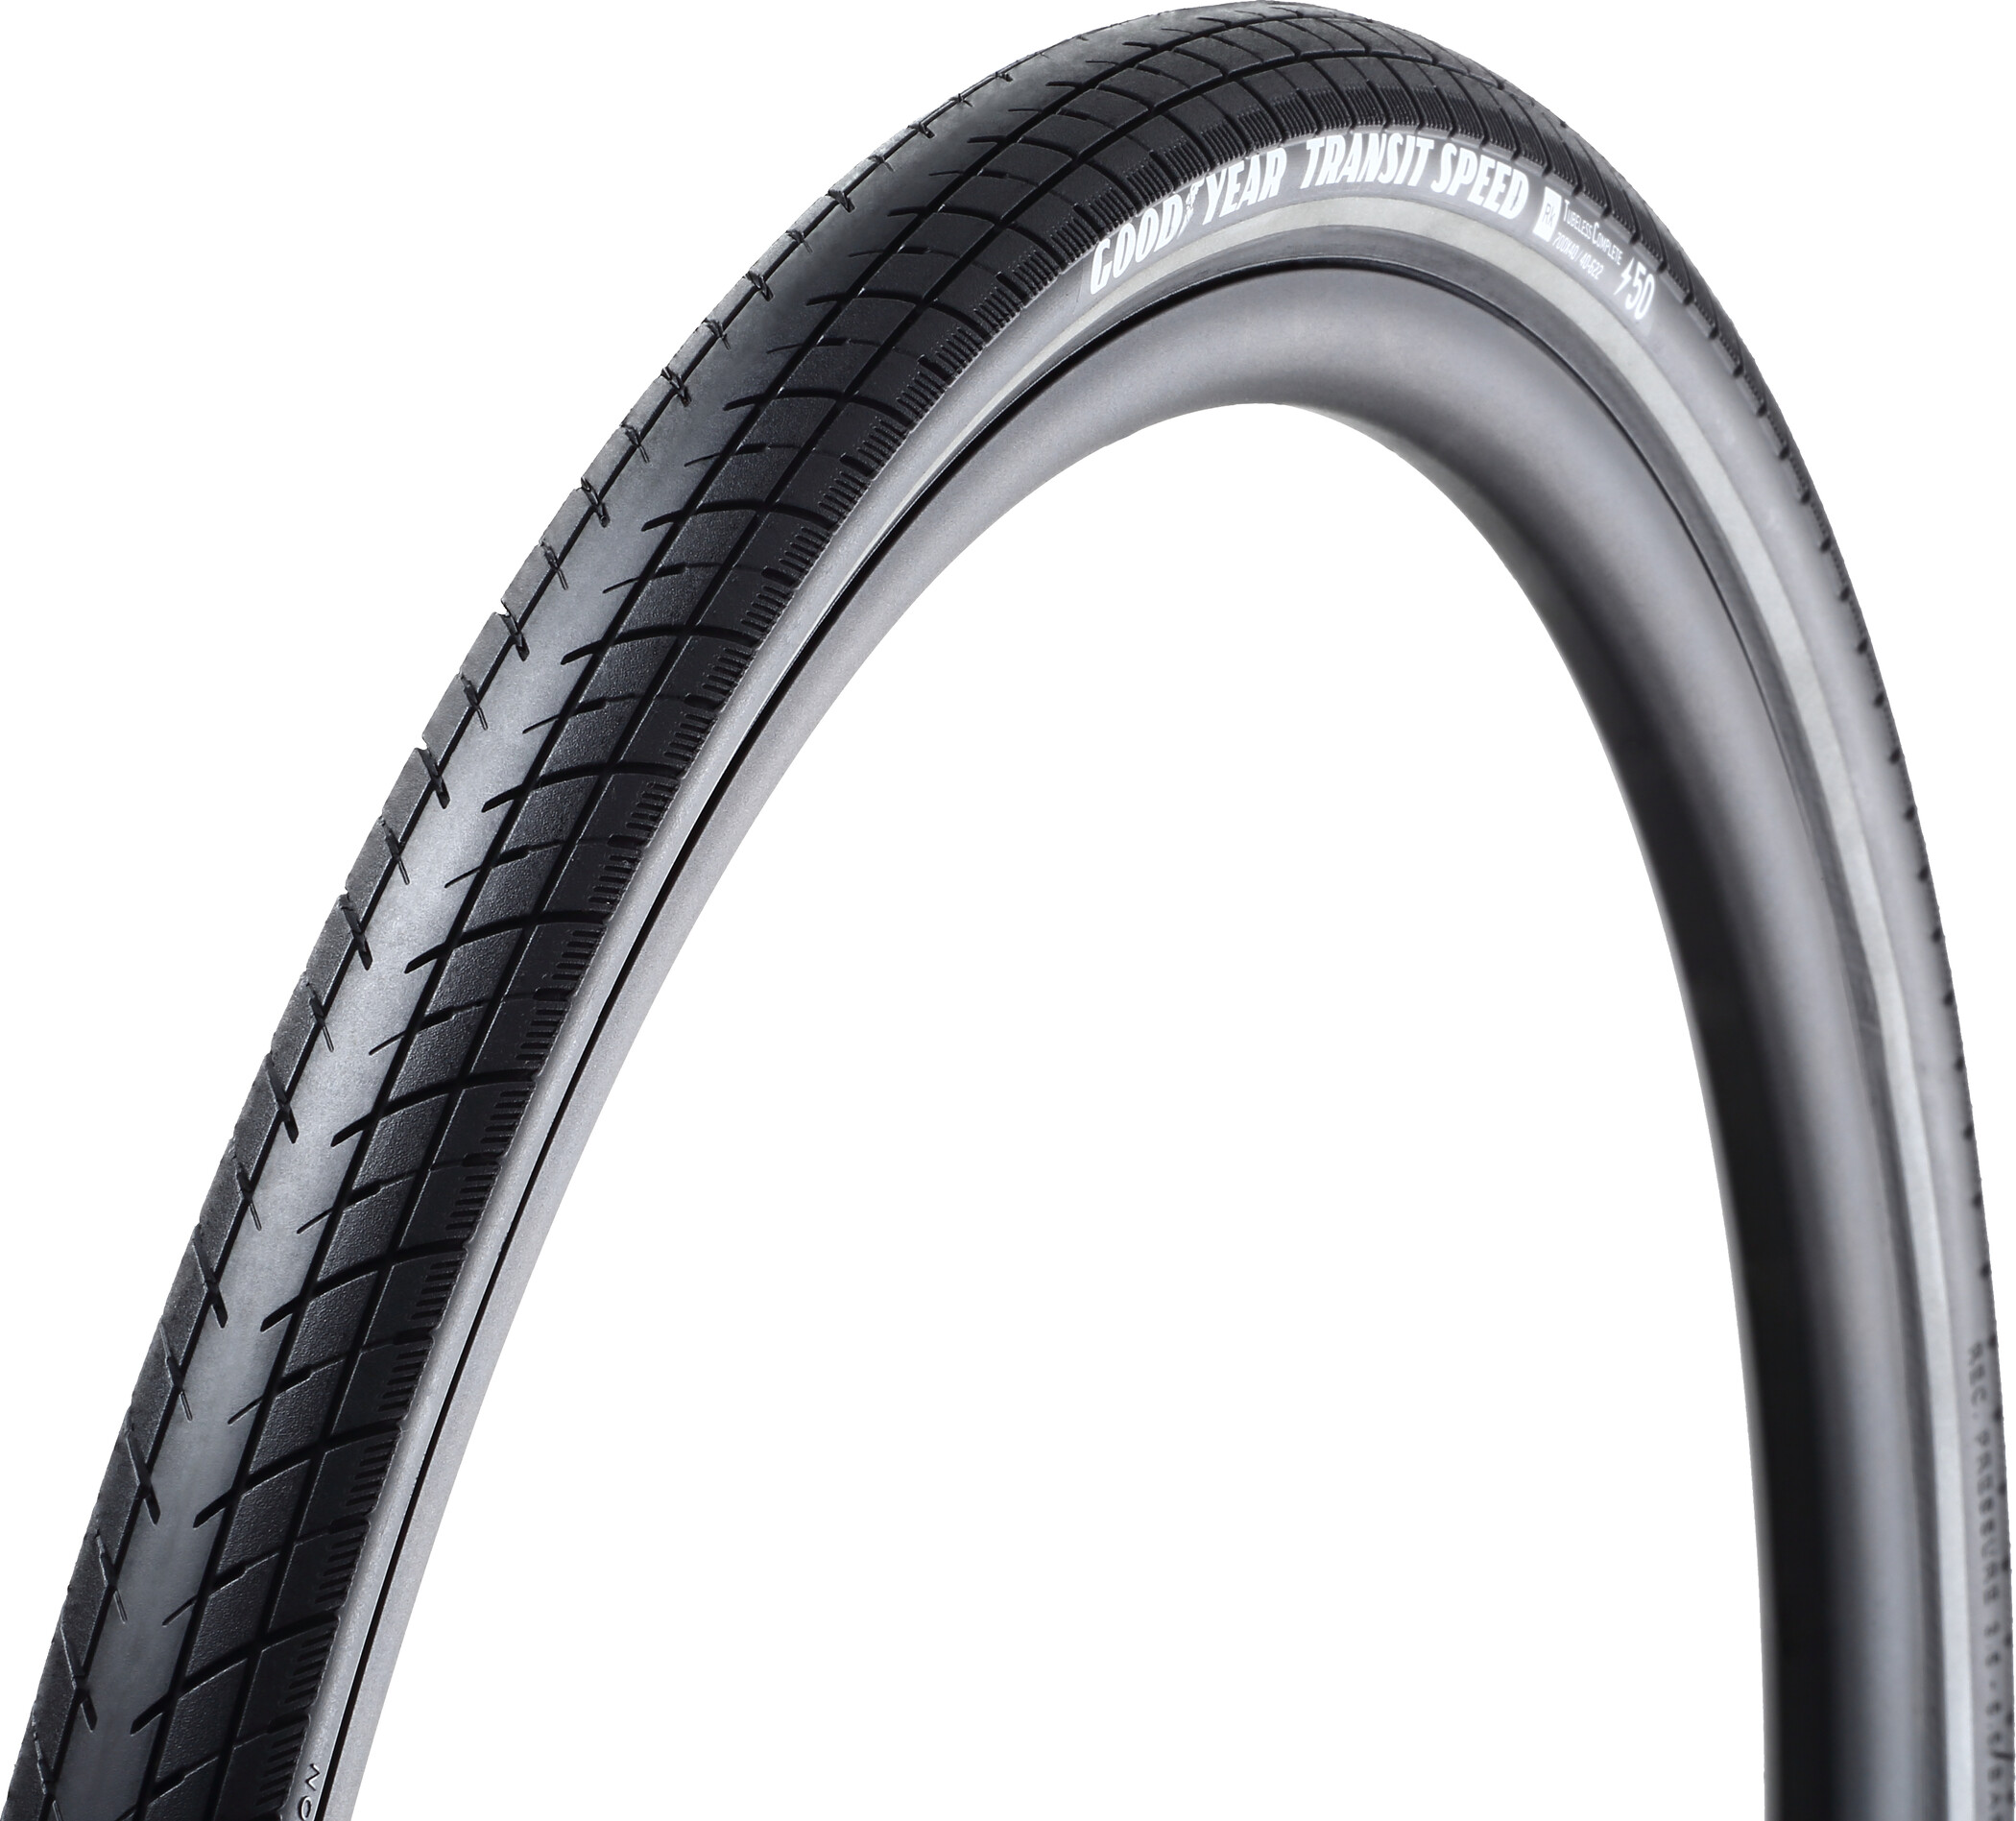 Goodyear Transit Speed Dæk 40-622 S3 Shell e50, black reflected (2019)   Tyres